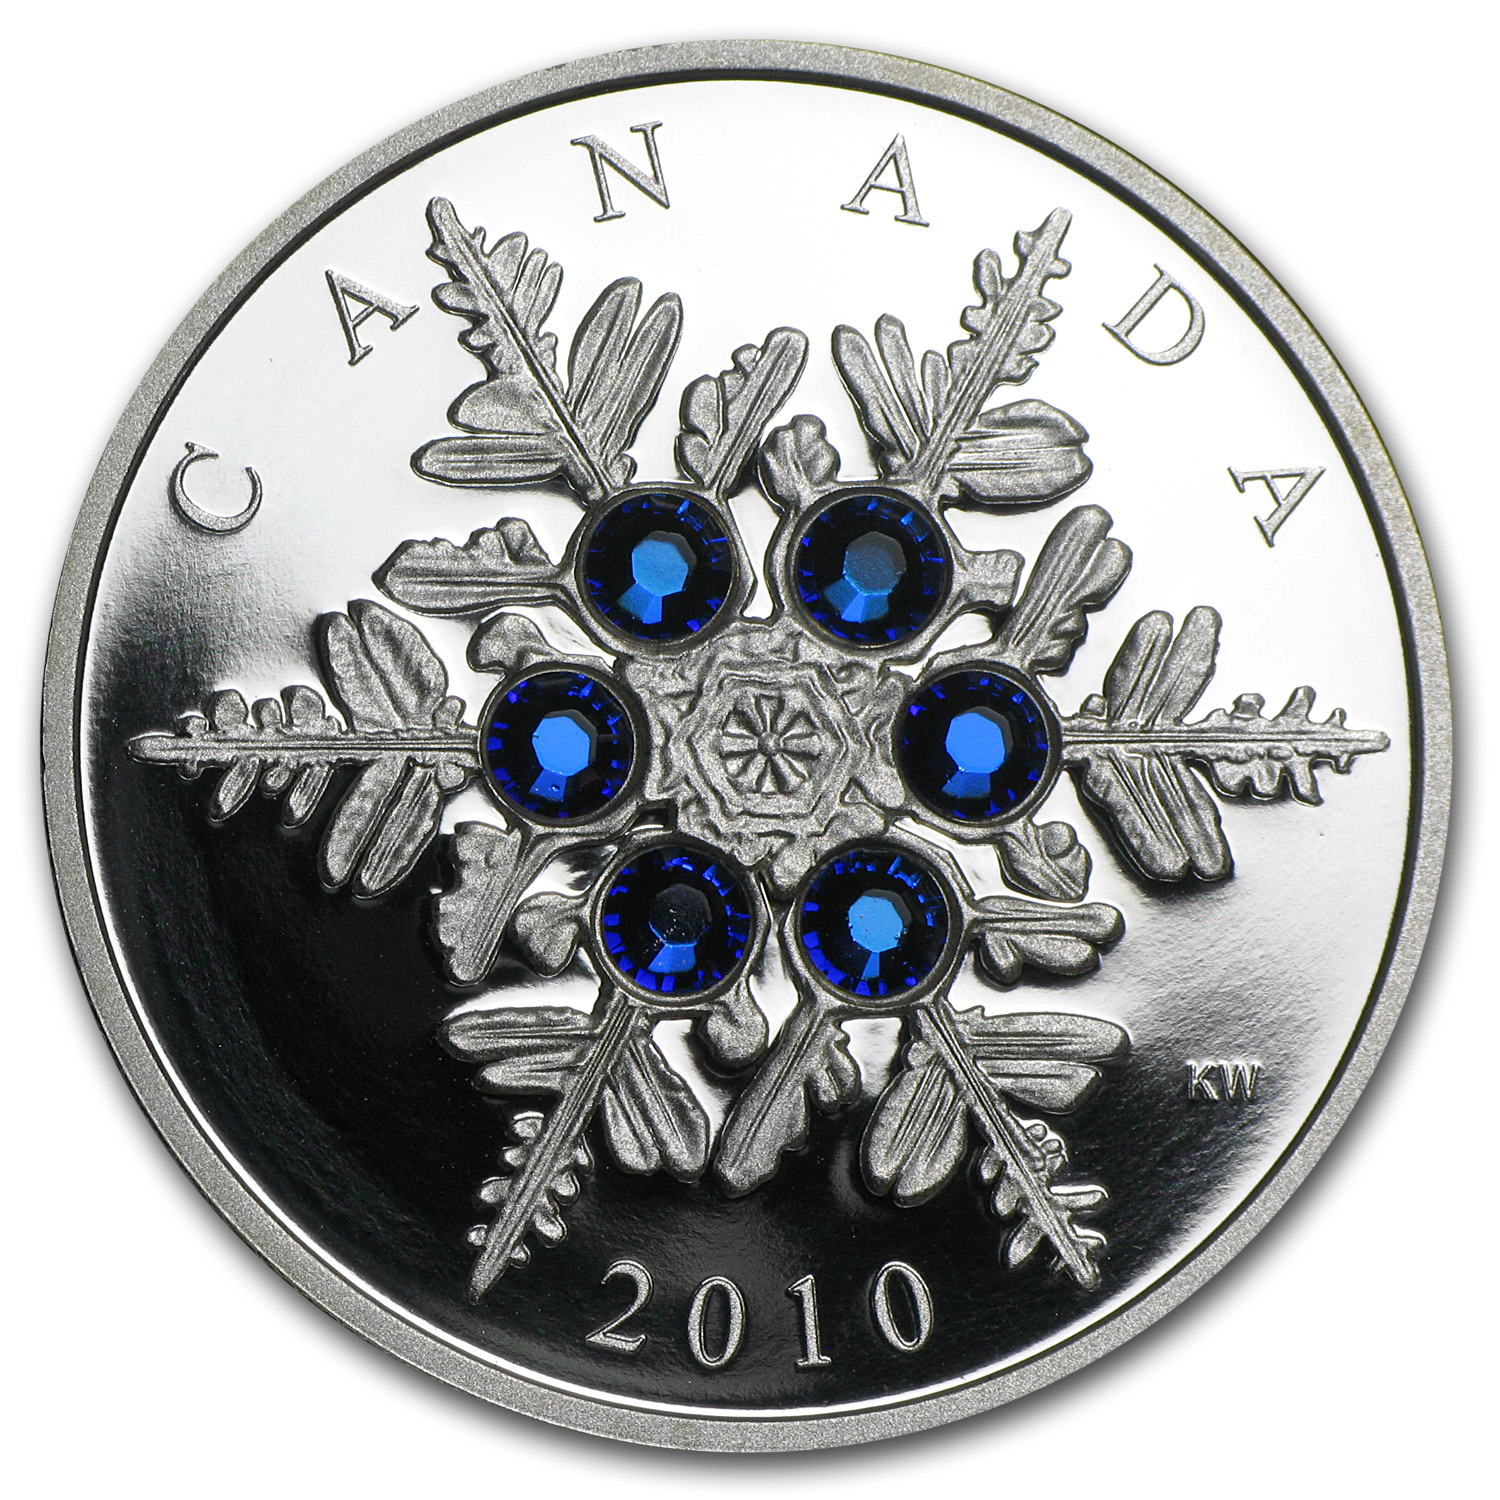 2010 1 oz Silver Canadian $20 Crystal Snowflake - Blue